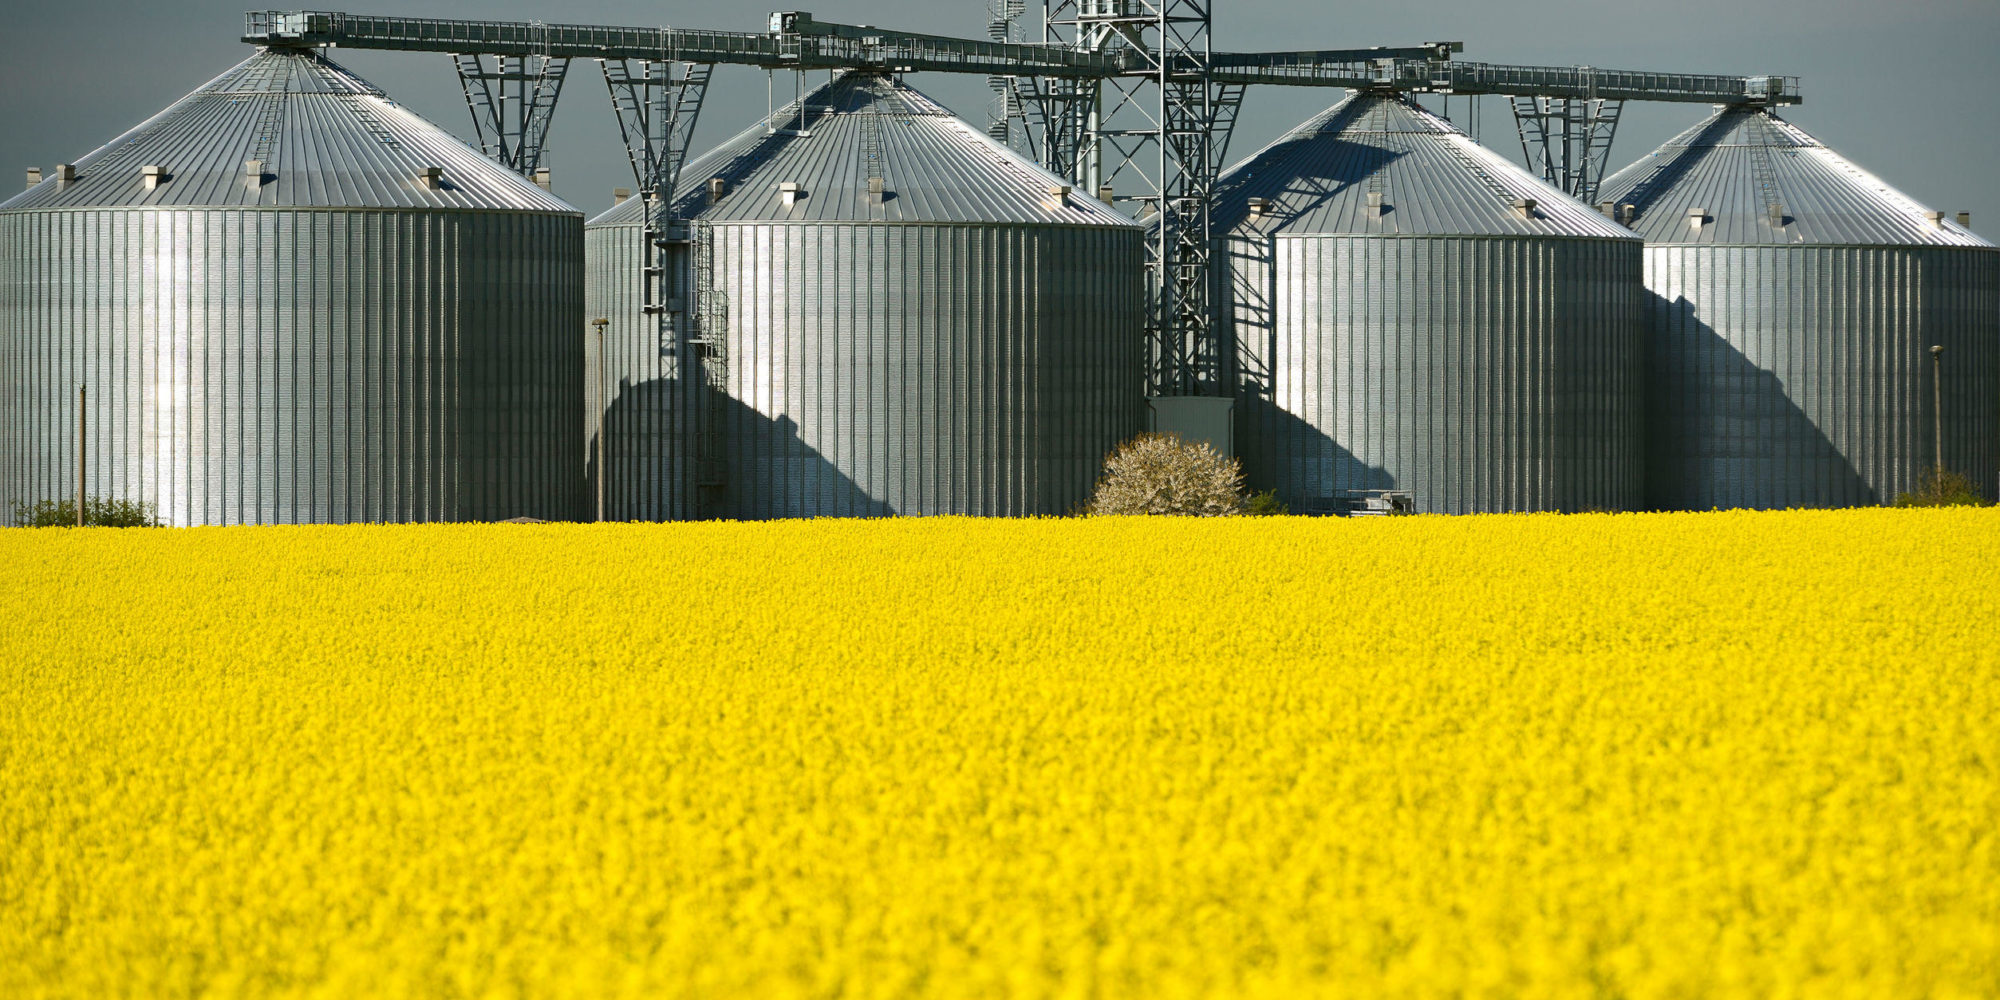 Ethanol & DDGS- DDGS output falls as ethanol production slows